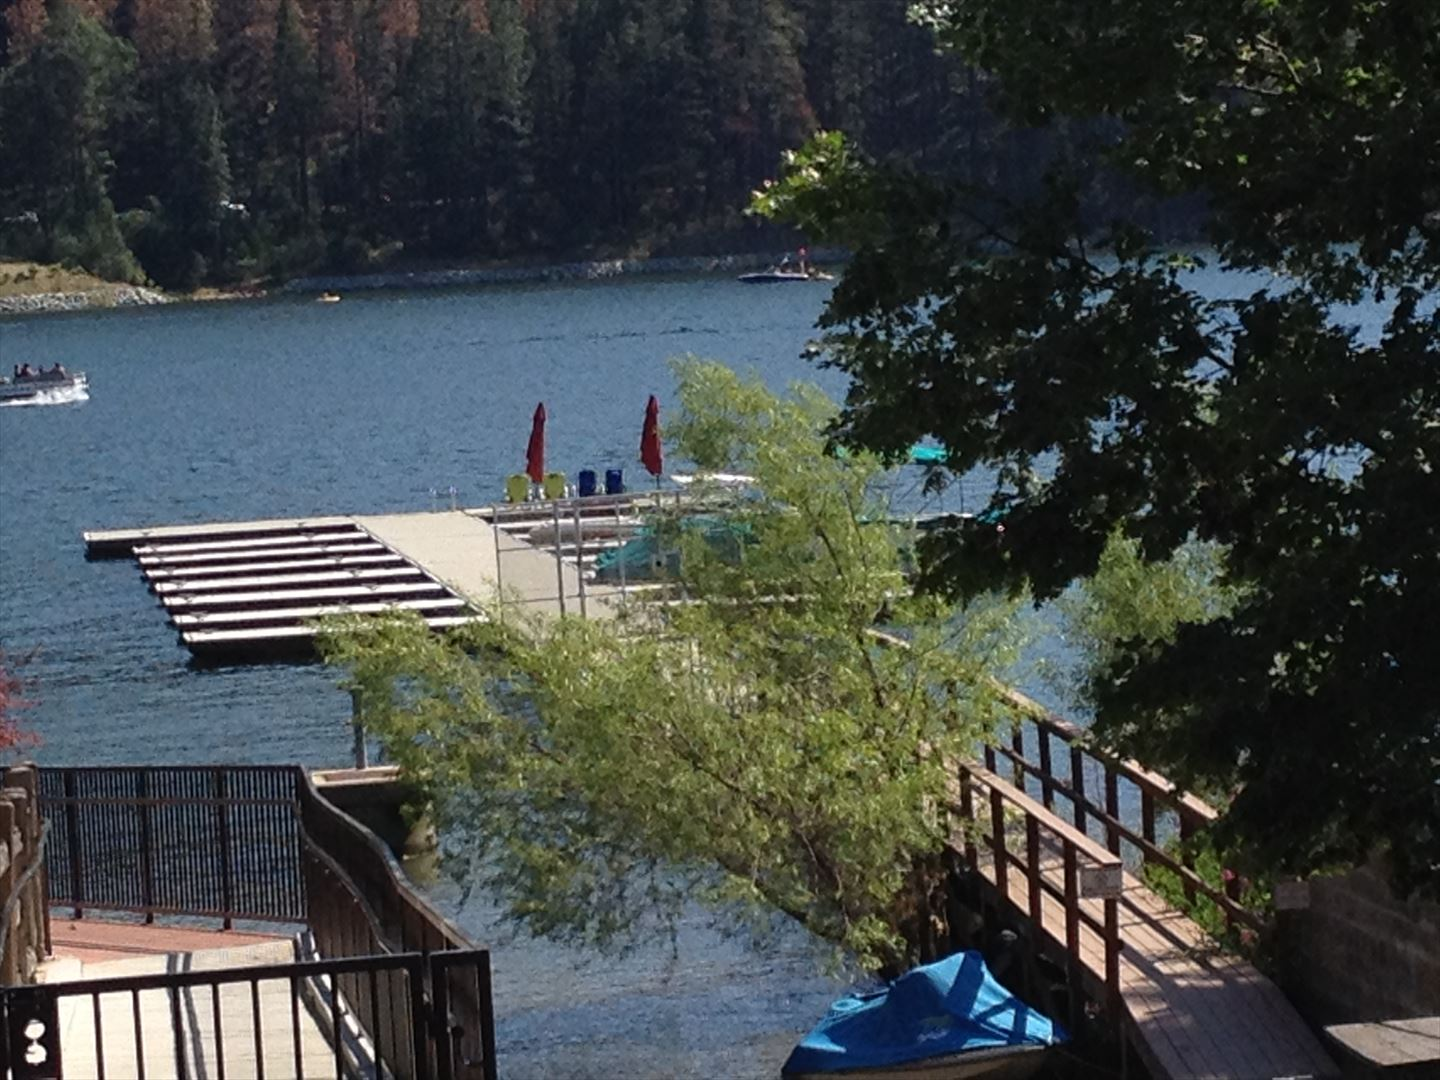 Plan to go boating or fishing? Here is a look at gated Beaver dock where your boatslip awaits. Just a short walk away!